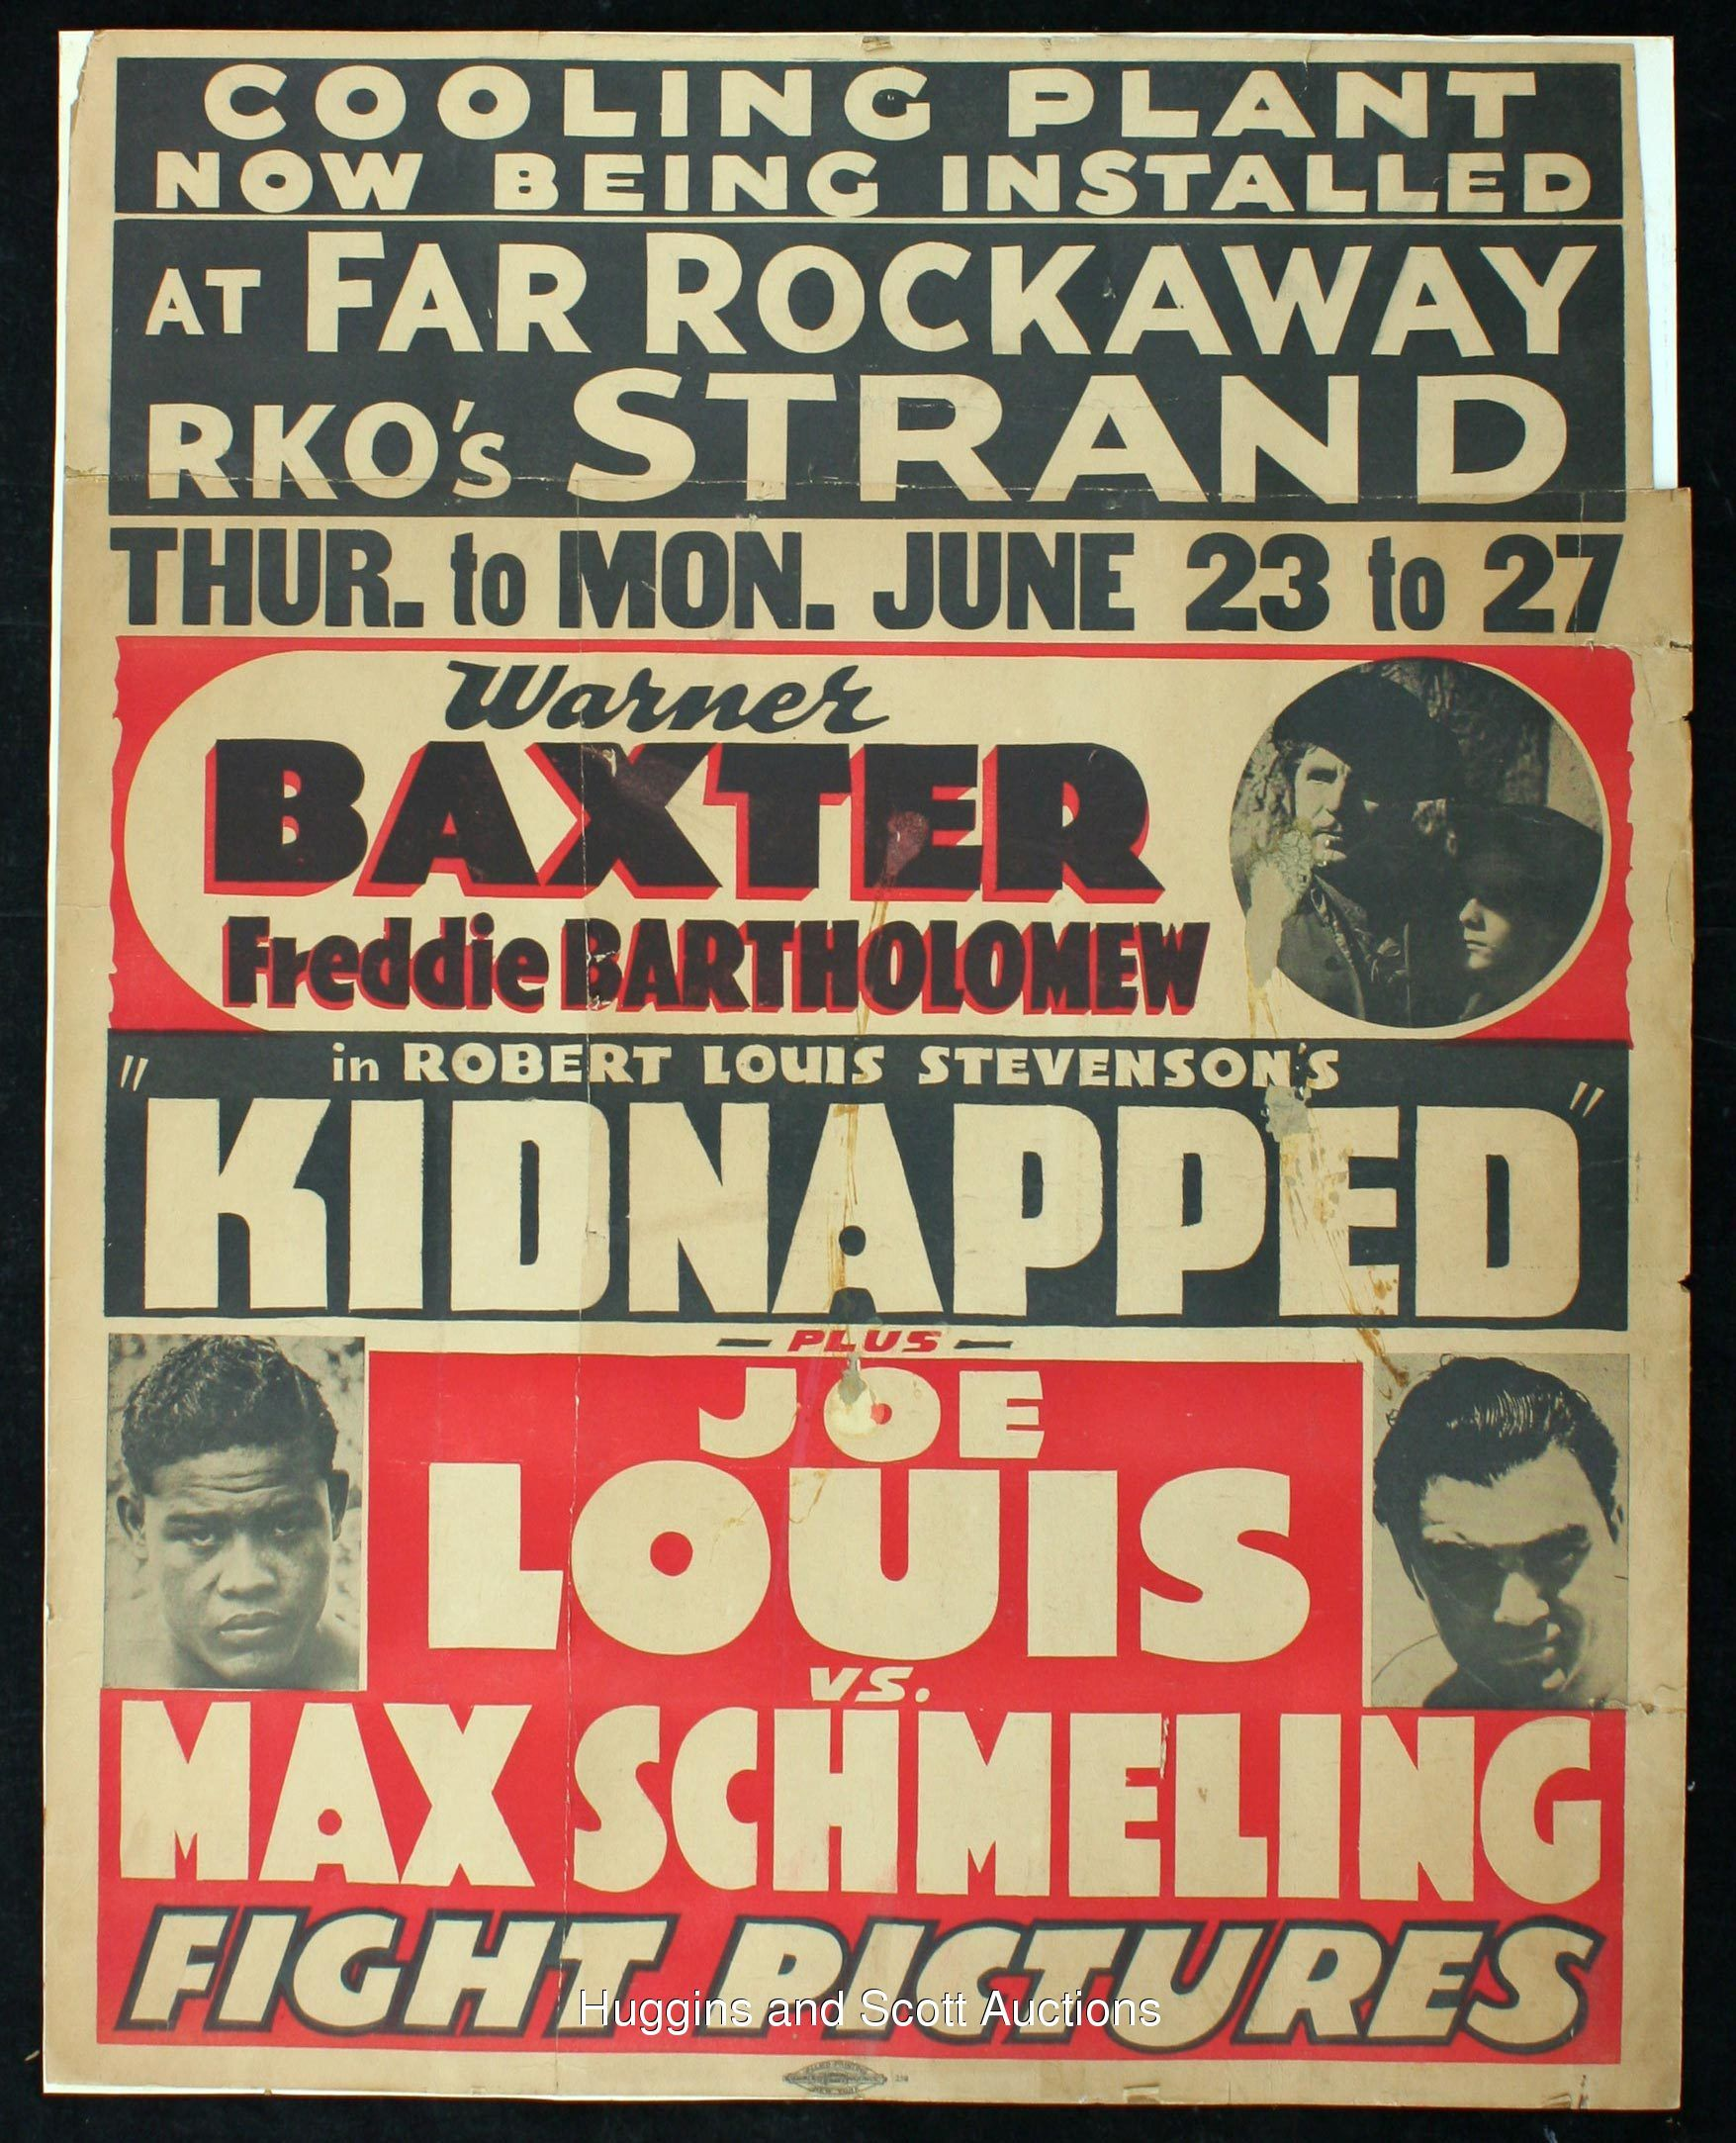 vintage boxing poster - Google Search   BOXING VINTAGE POSTERS ...